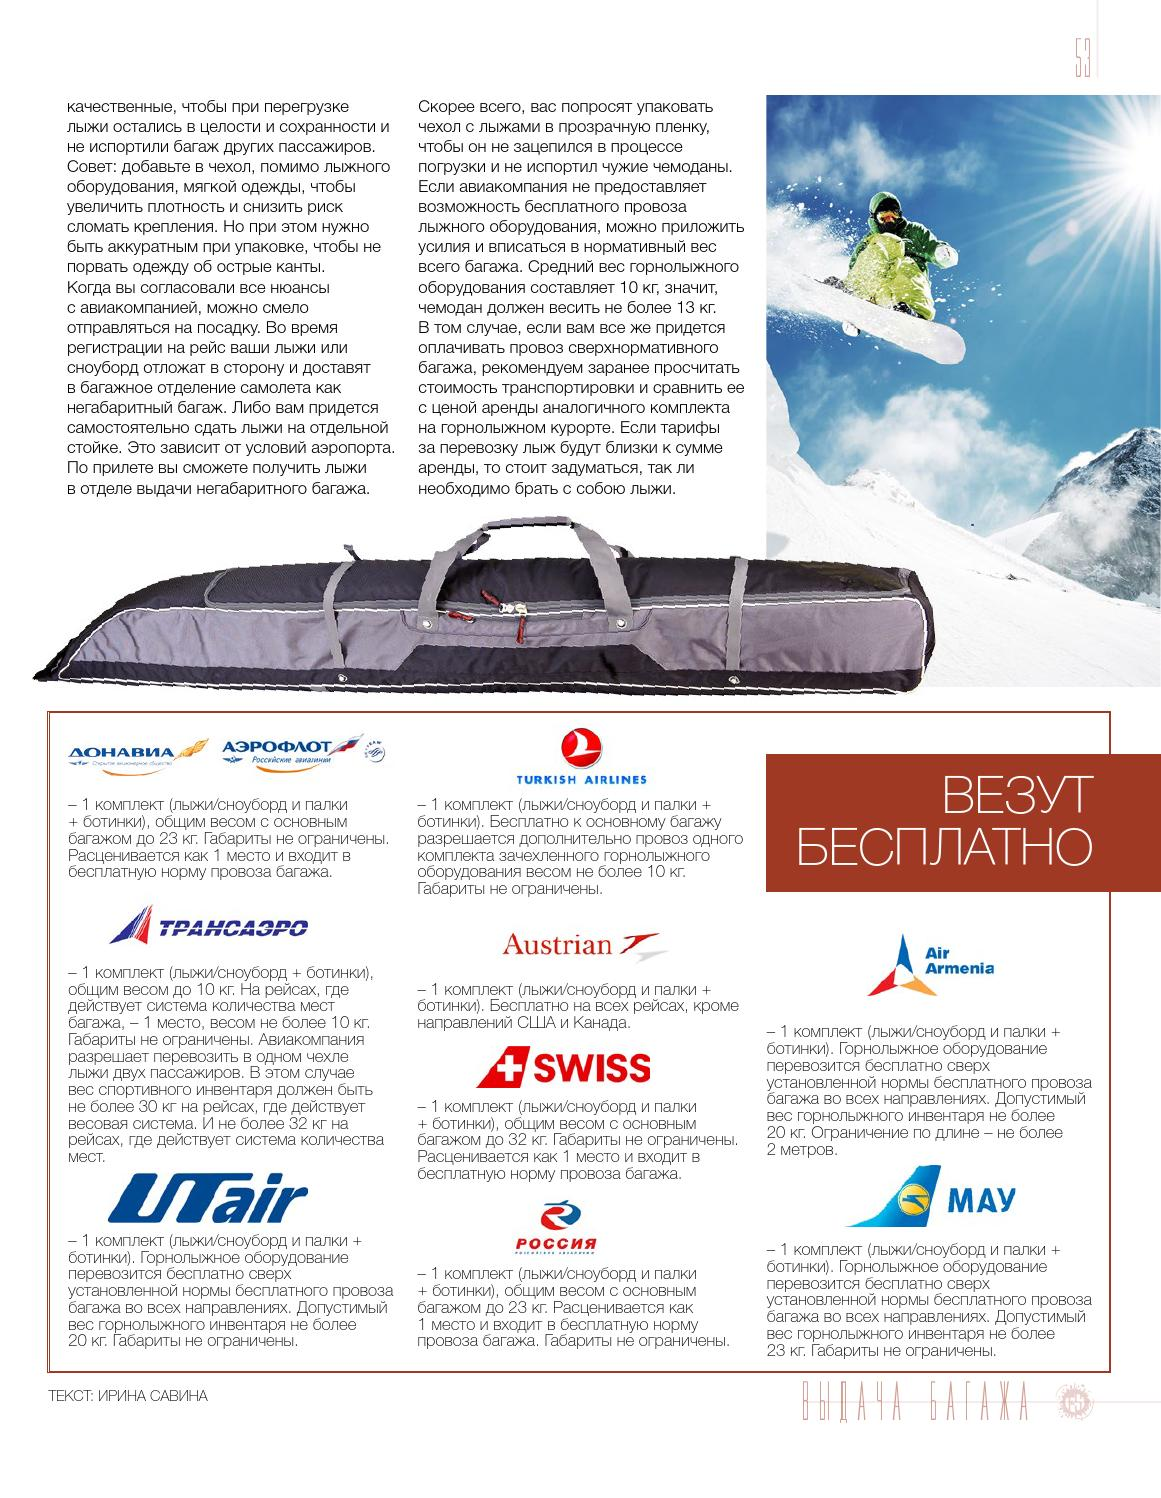 Skiing in flight_Page_2